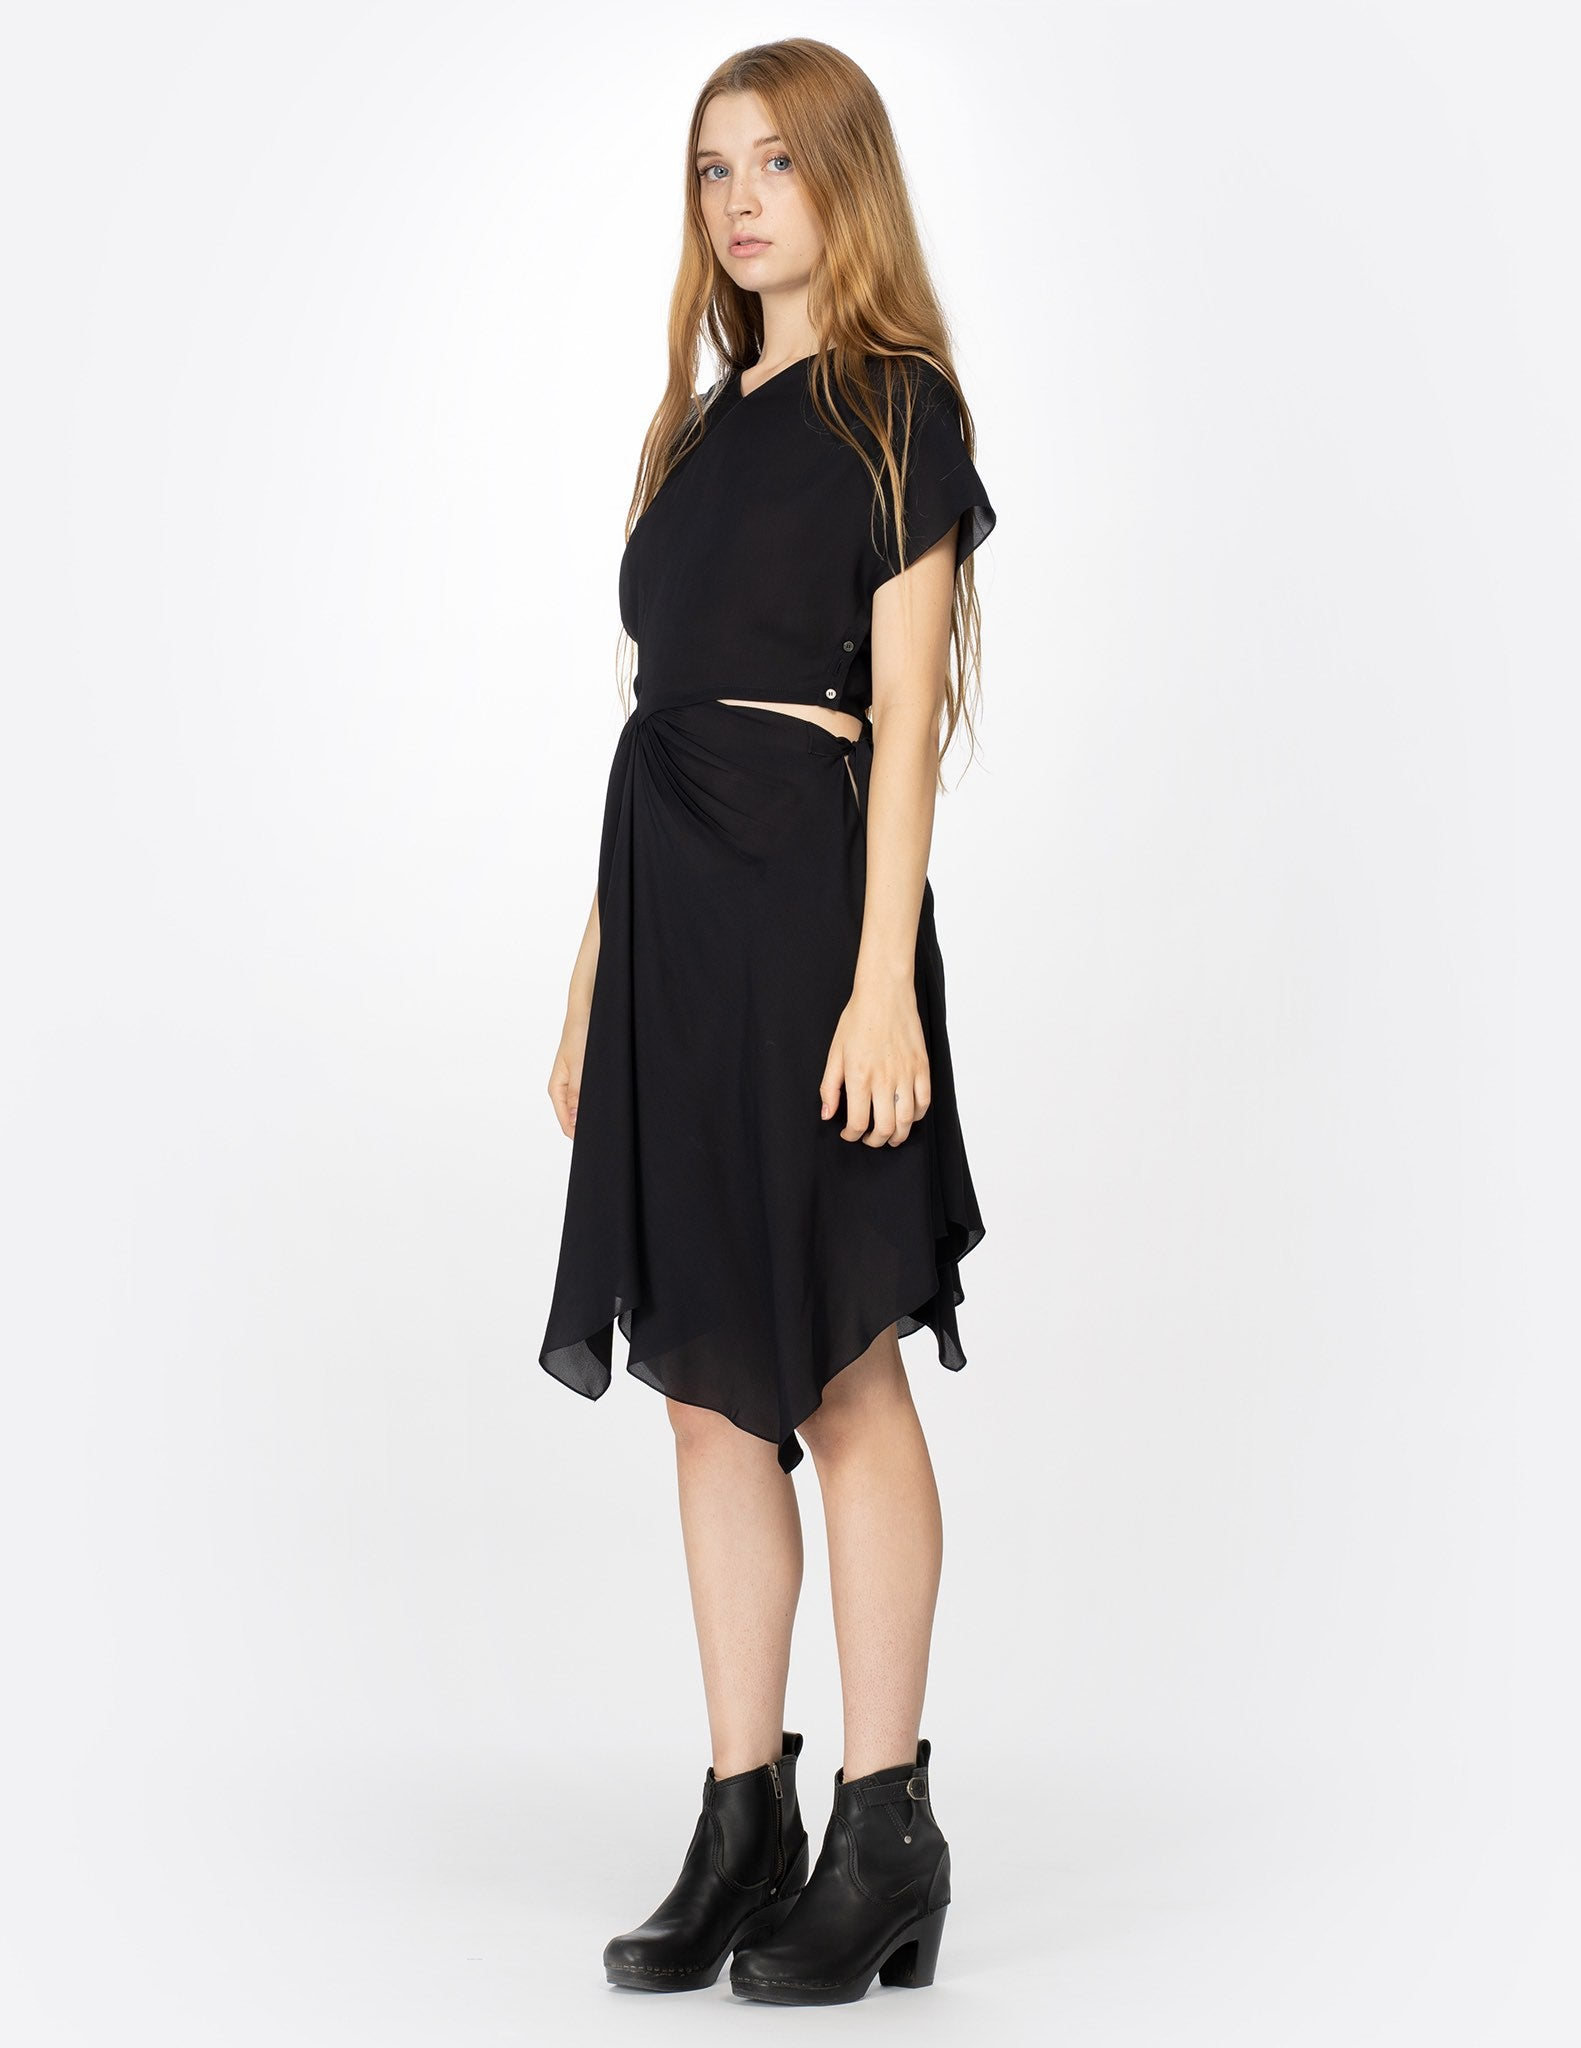 morgane le fay black silk dress